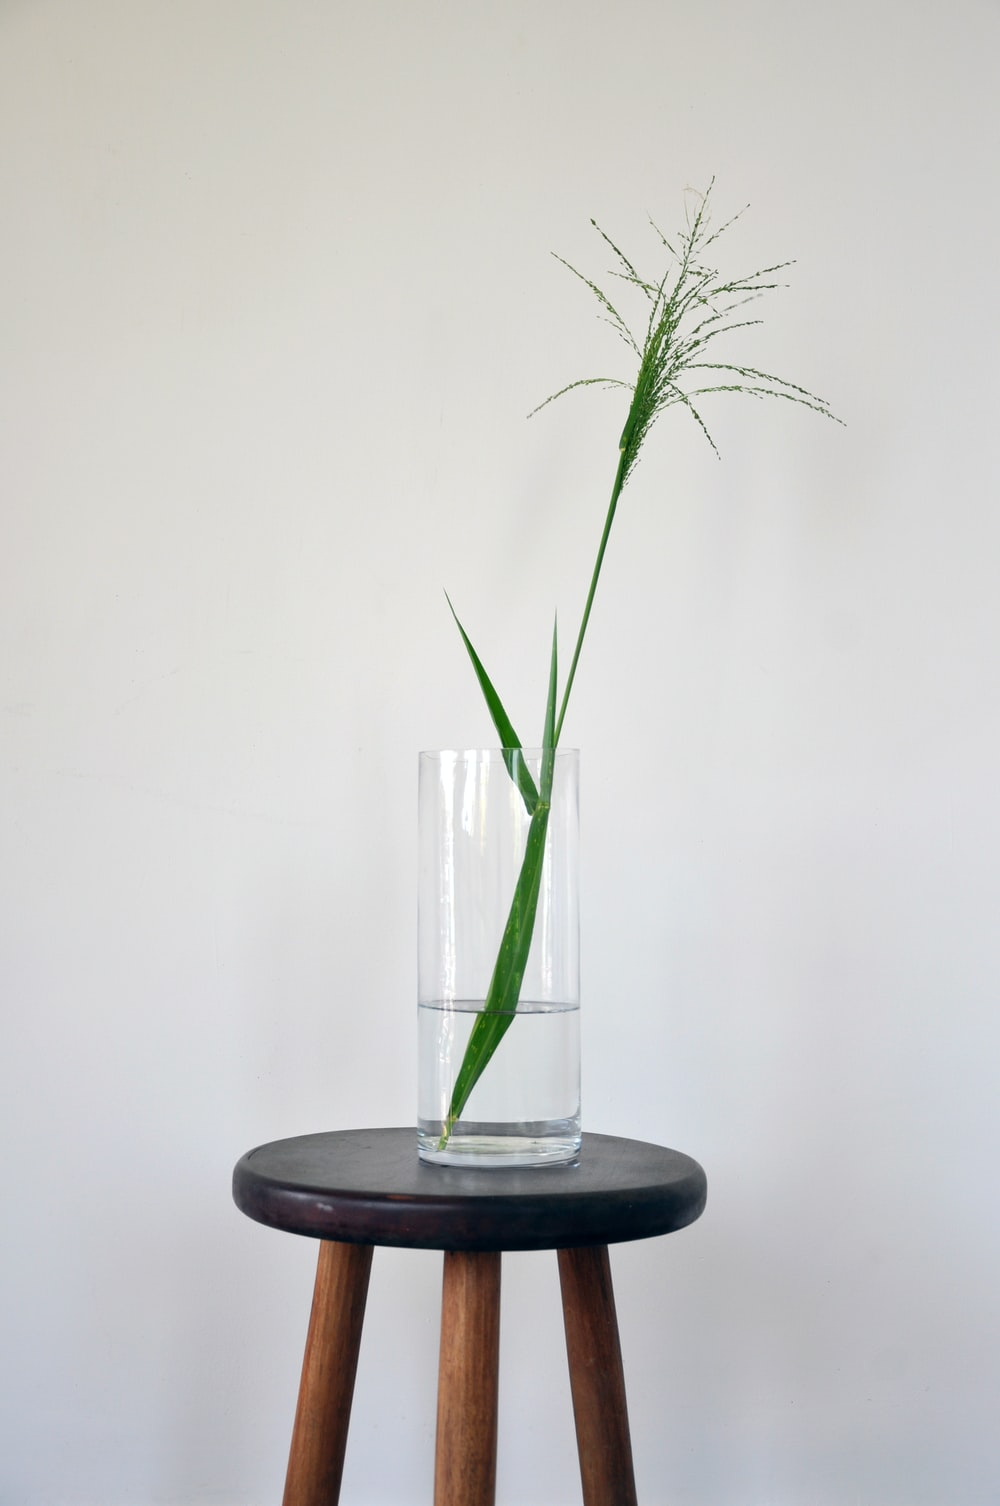 clear glass vase with green plant